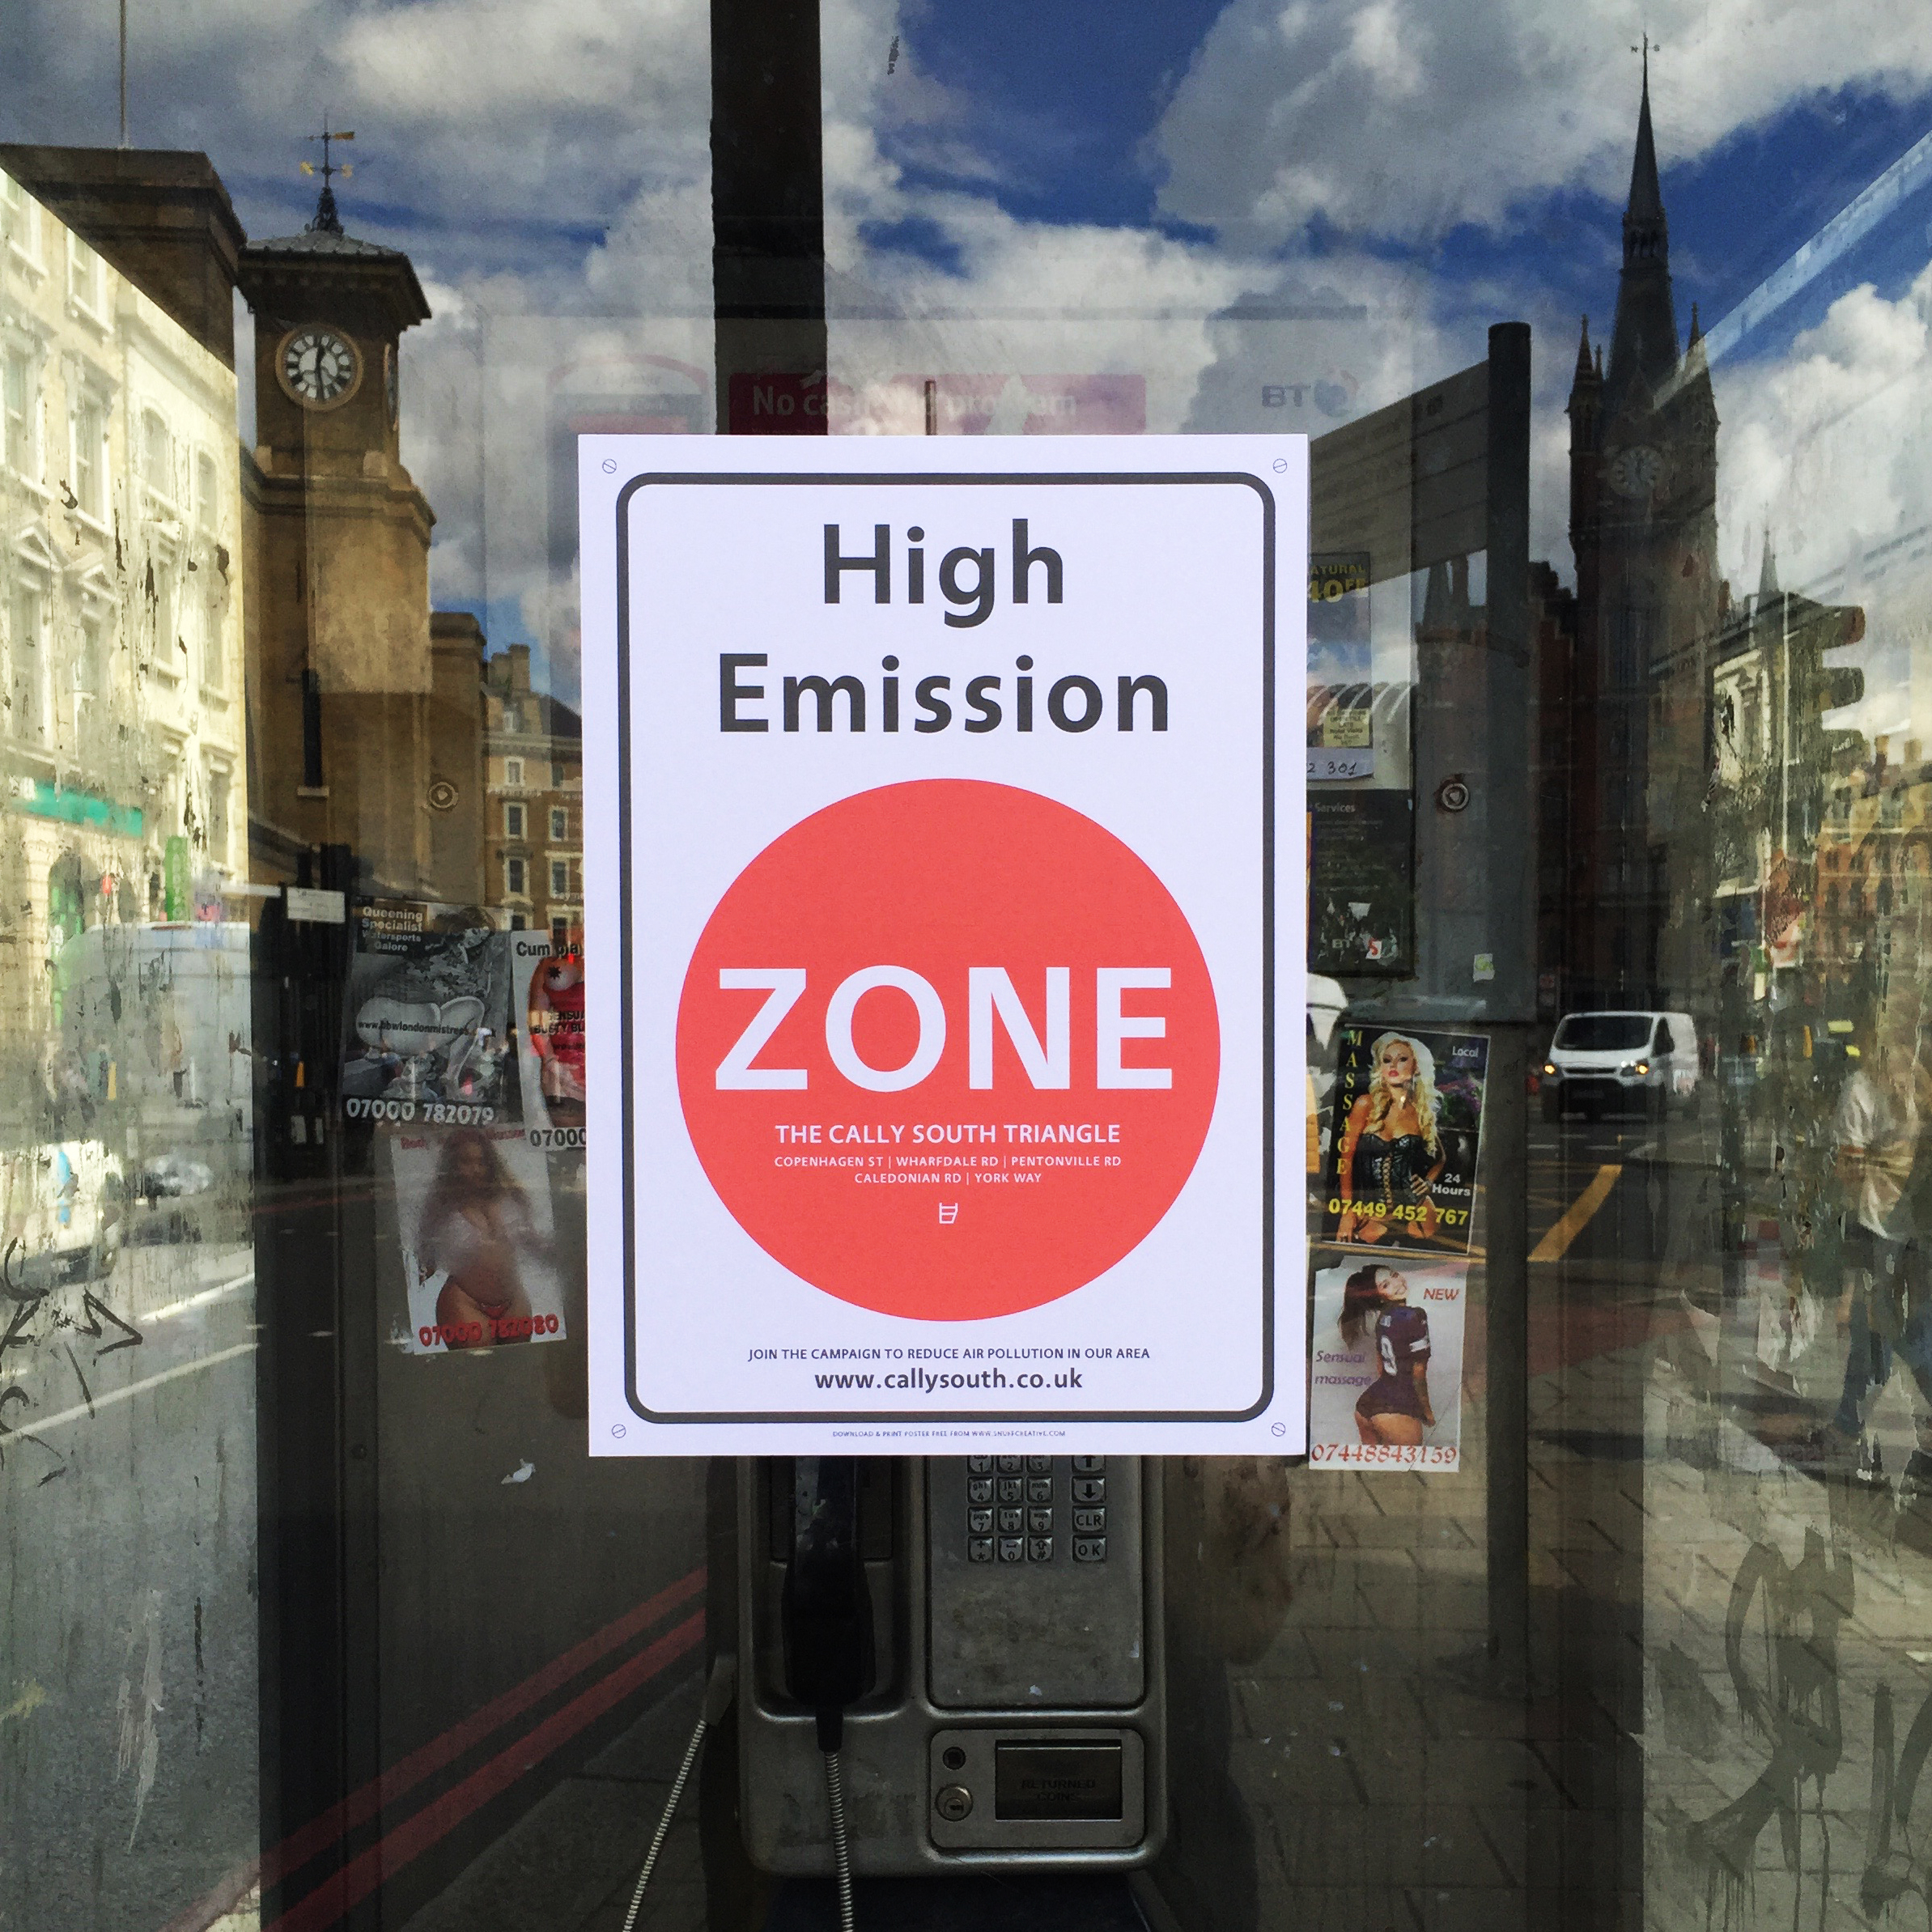 HIGH EMISSION ZONE-signagePOSTERS-phonebox-snuffcreative2016.jpg